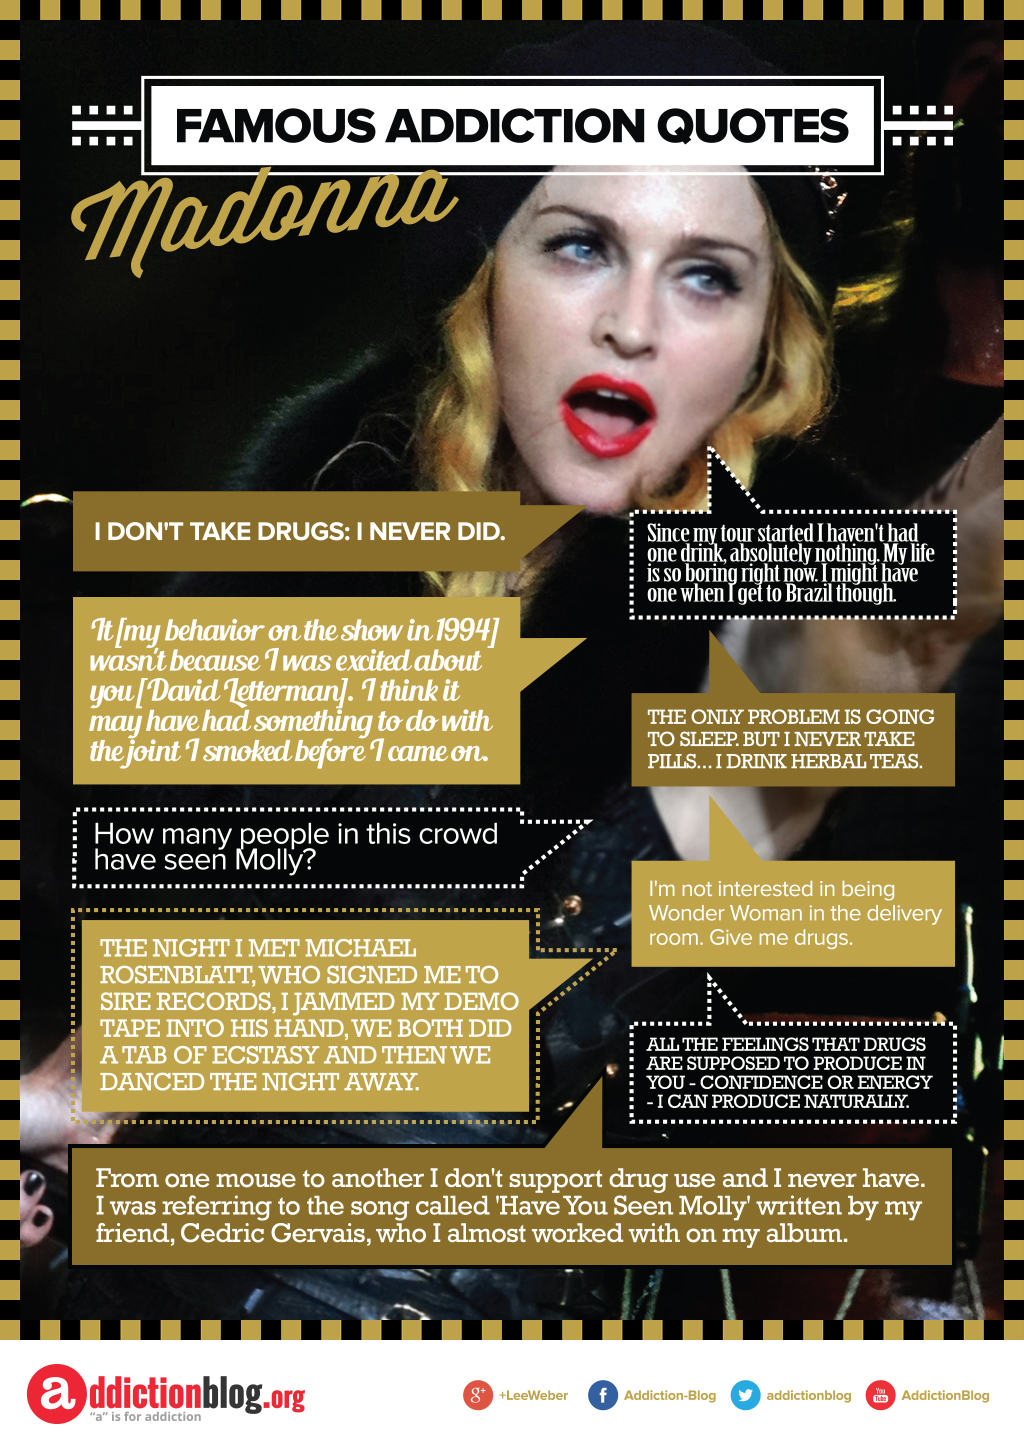 Madonna's quotes on drug use and drinking (INFOGRAPHIC)